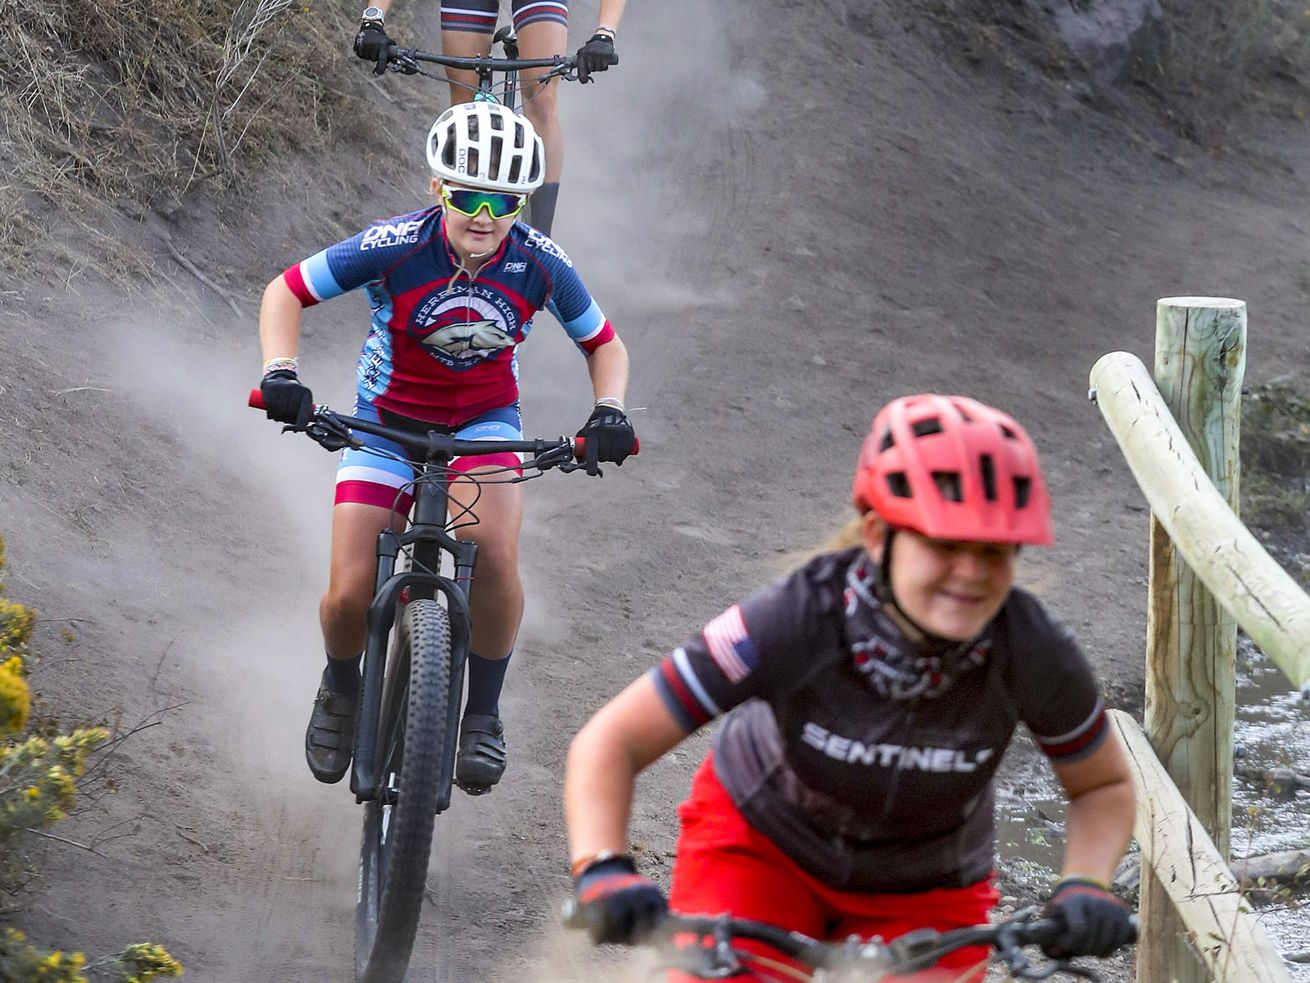 Salt Lake trails project gets closer to reality at Butterfield Canyon